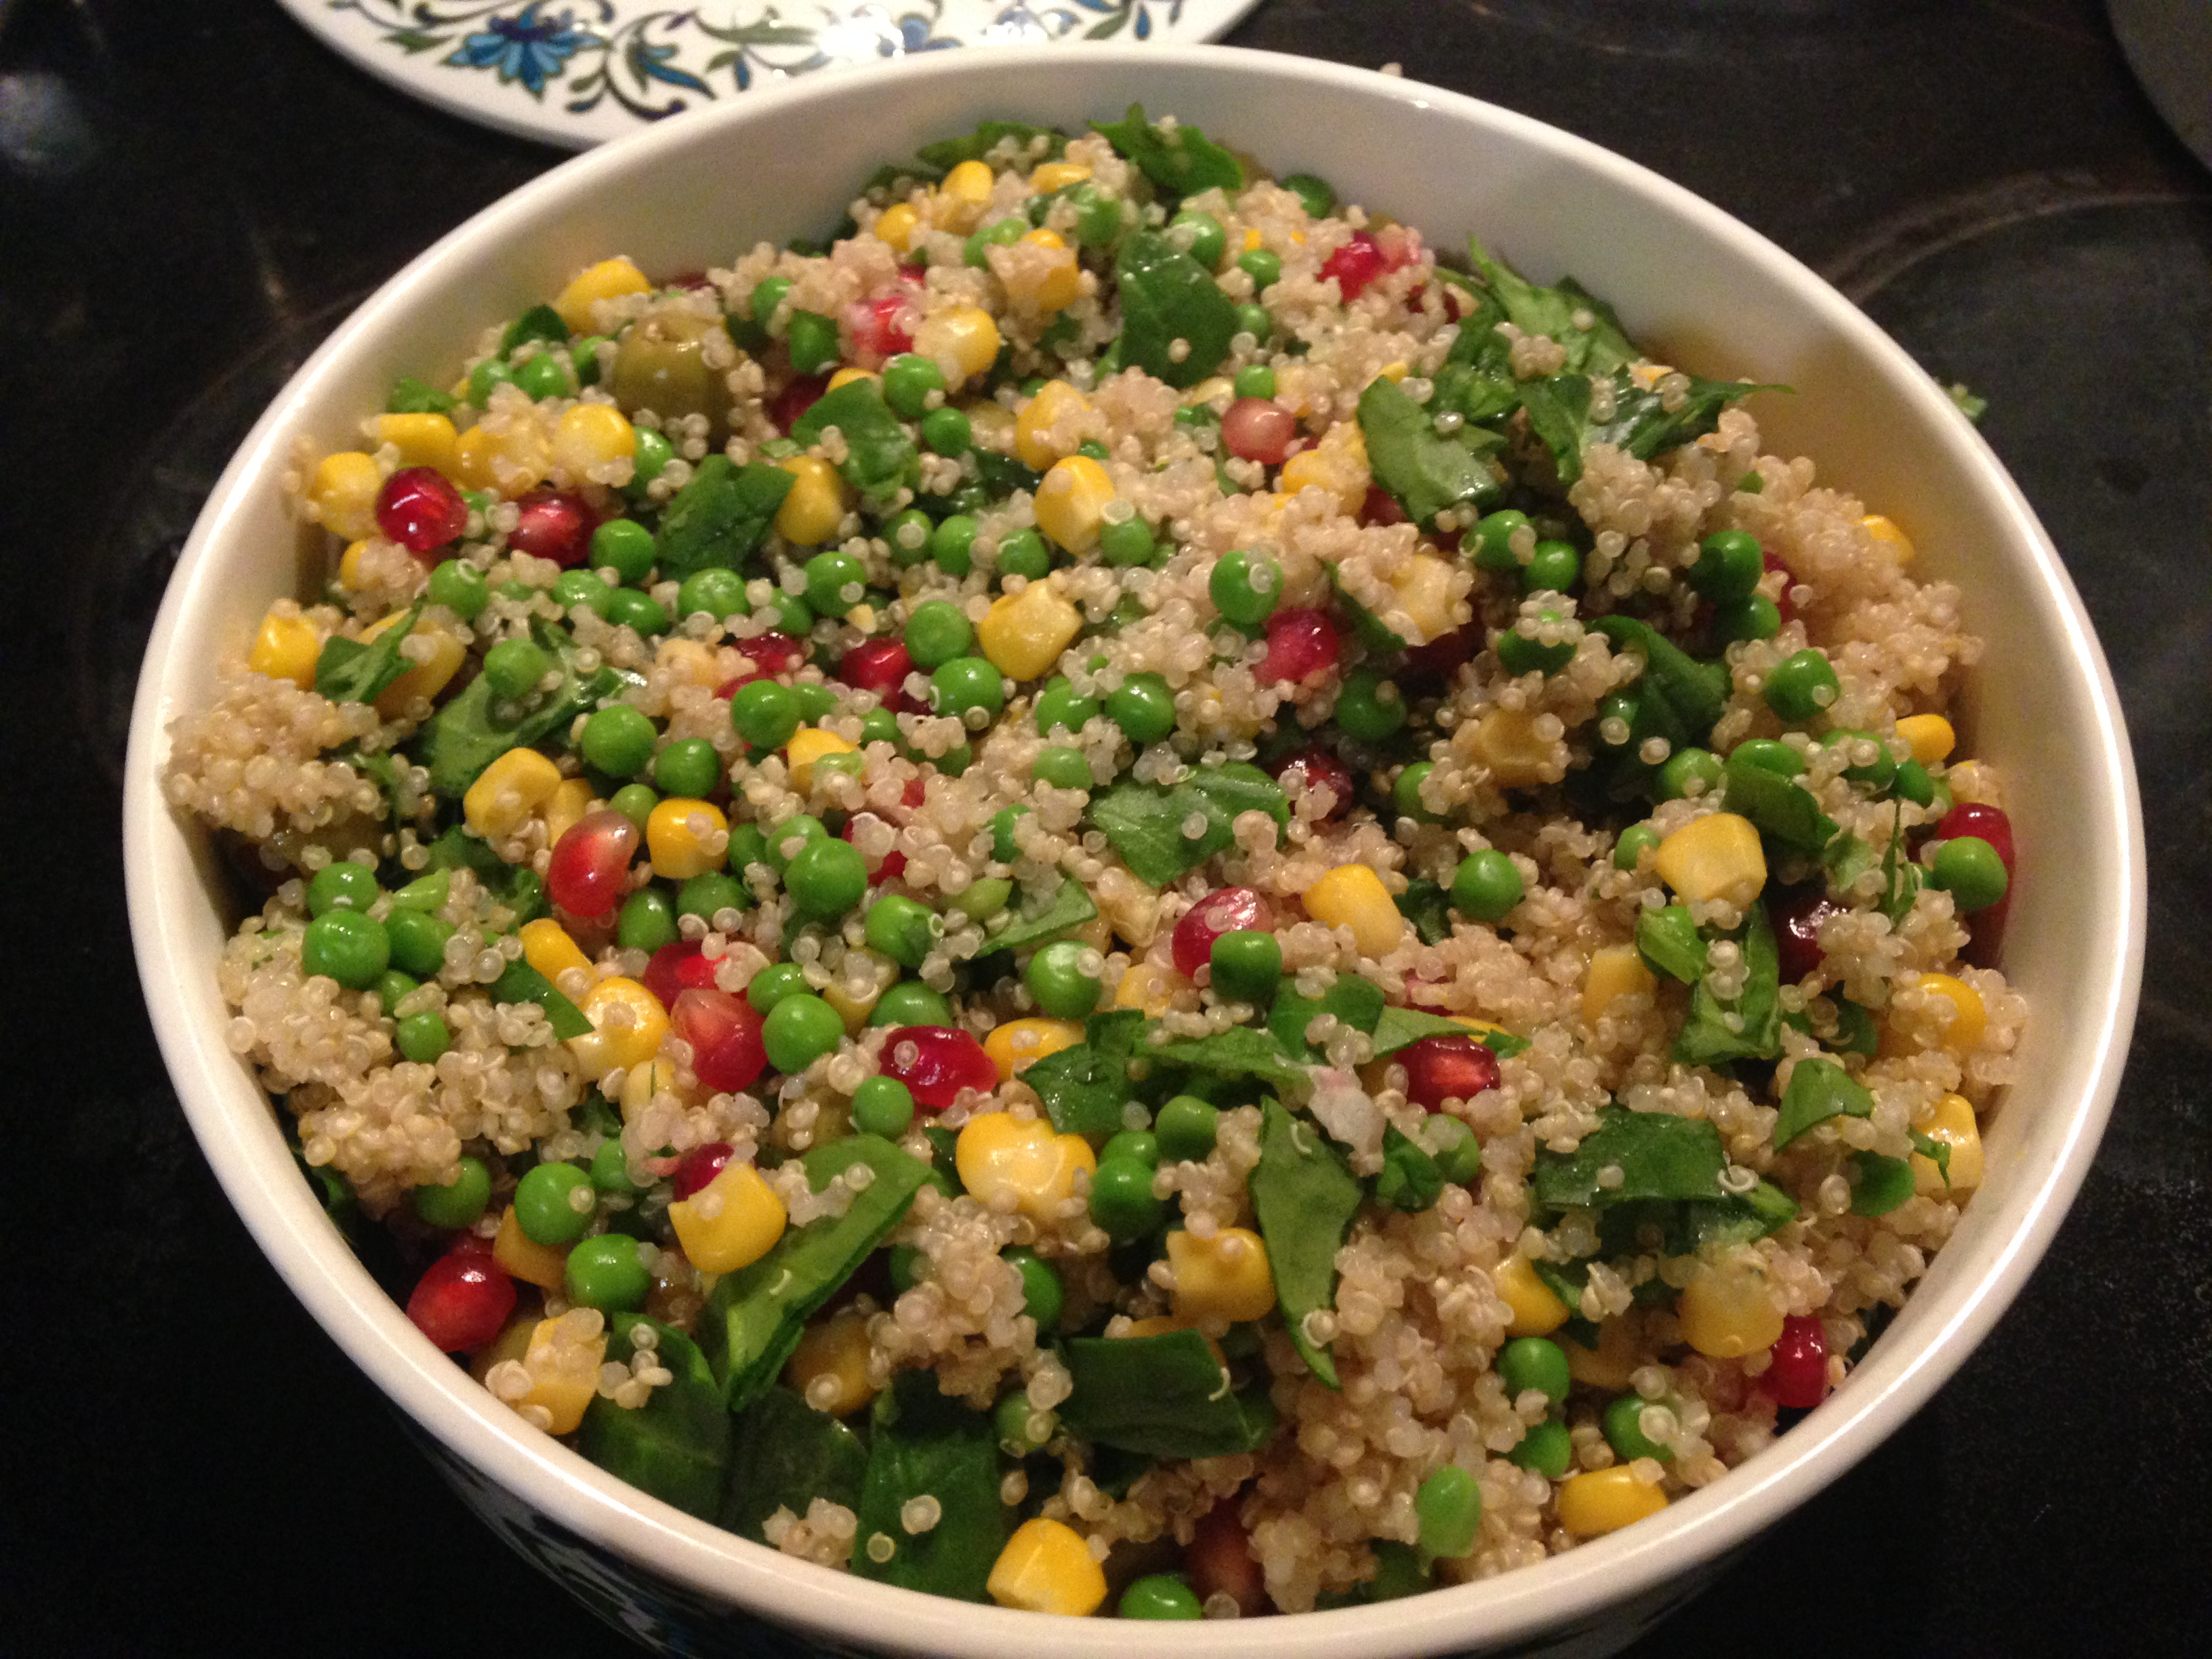 Ultimate red, green and yellow salad